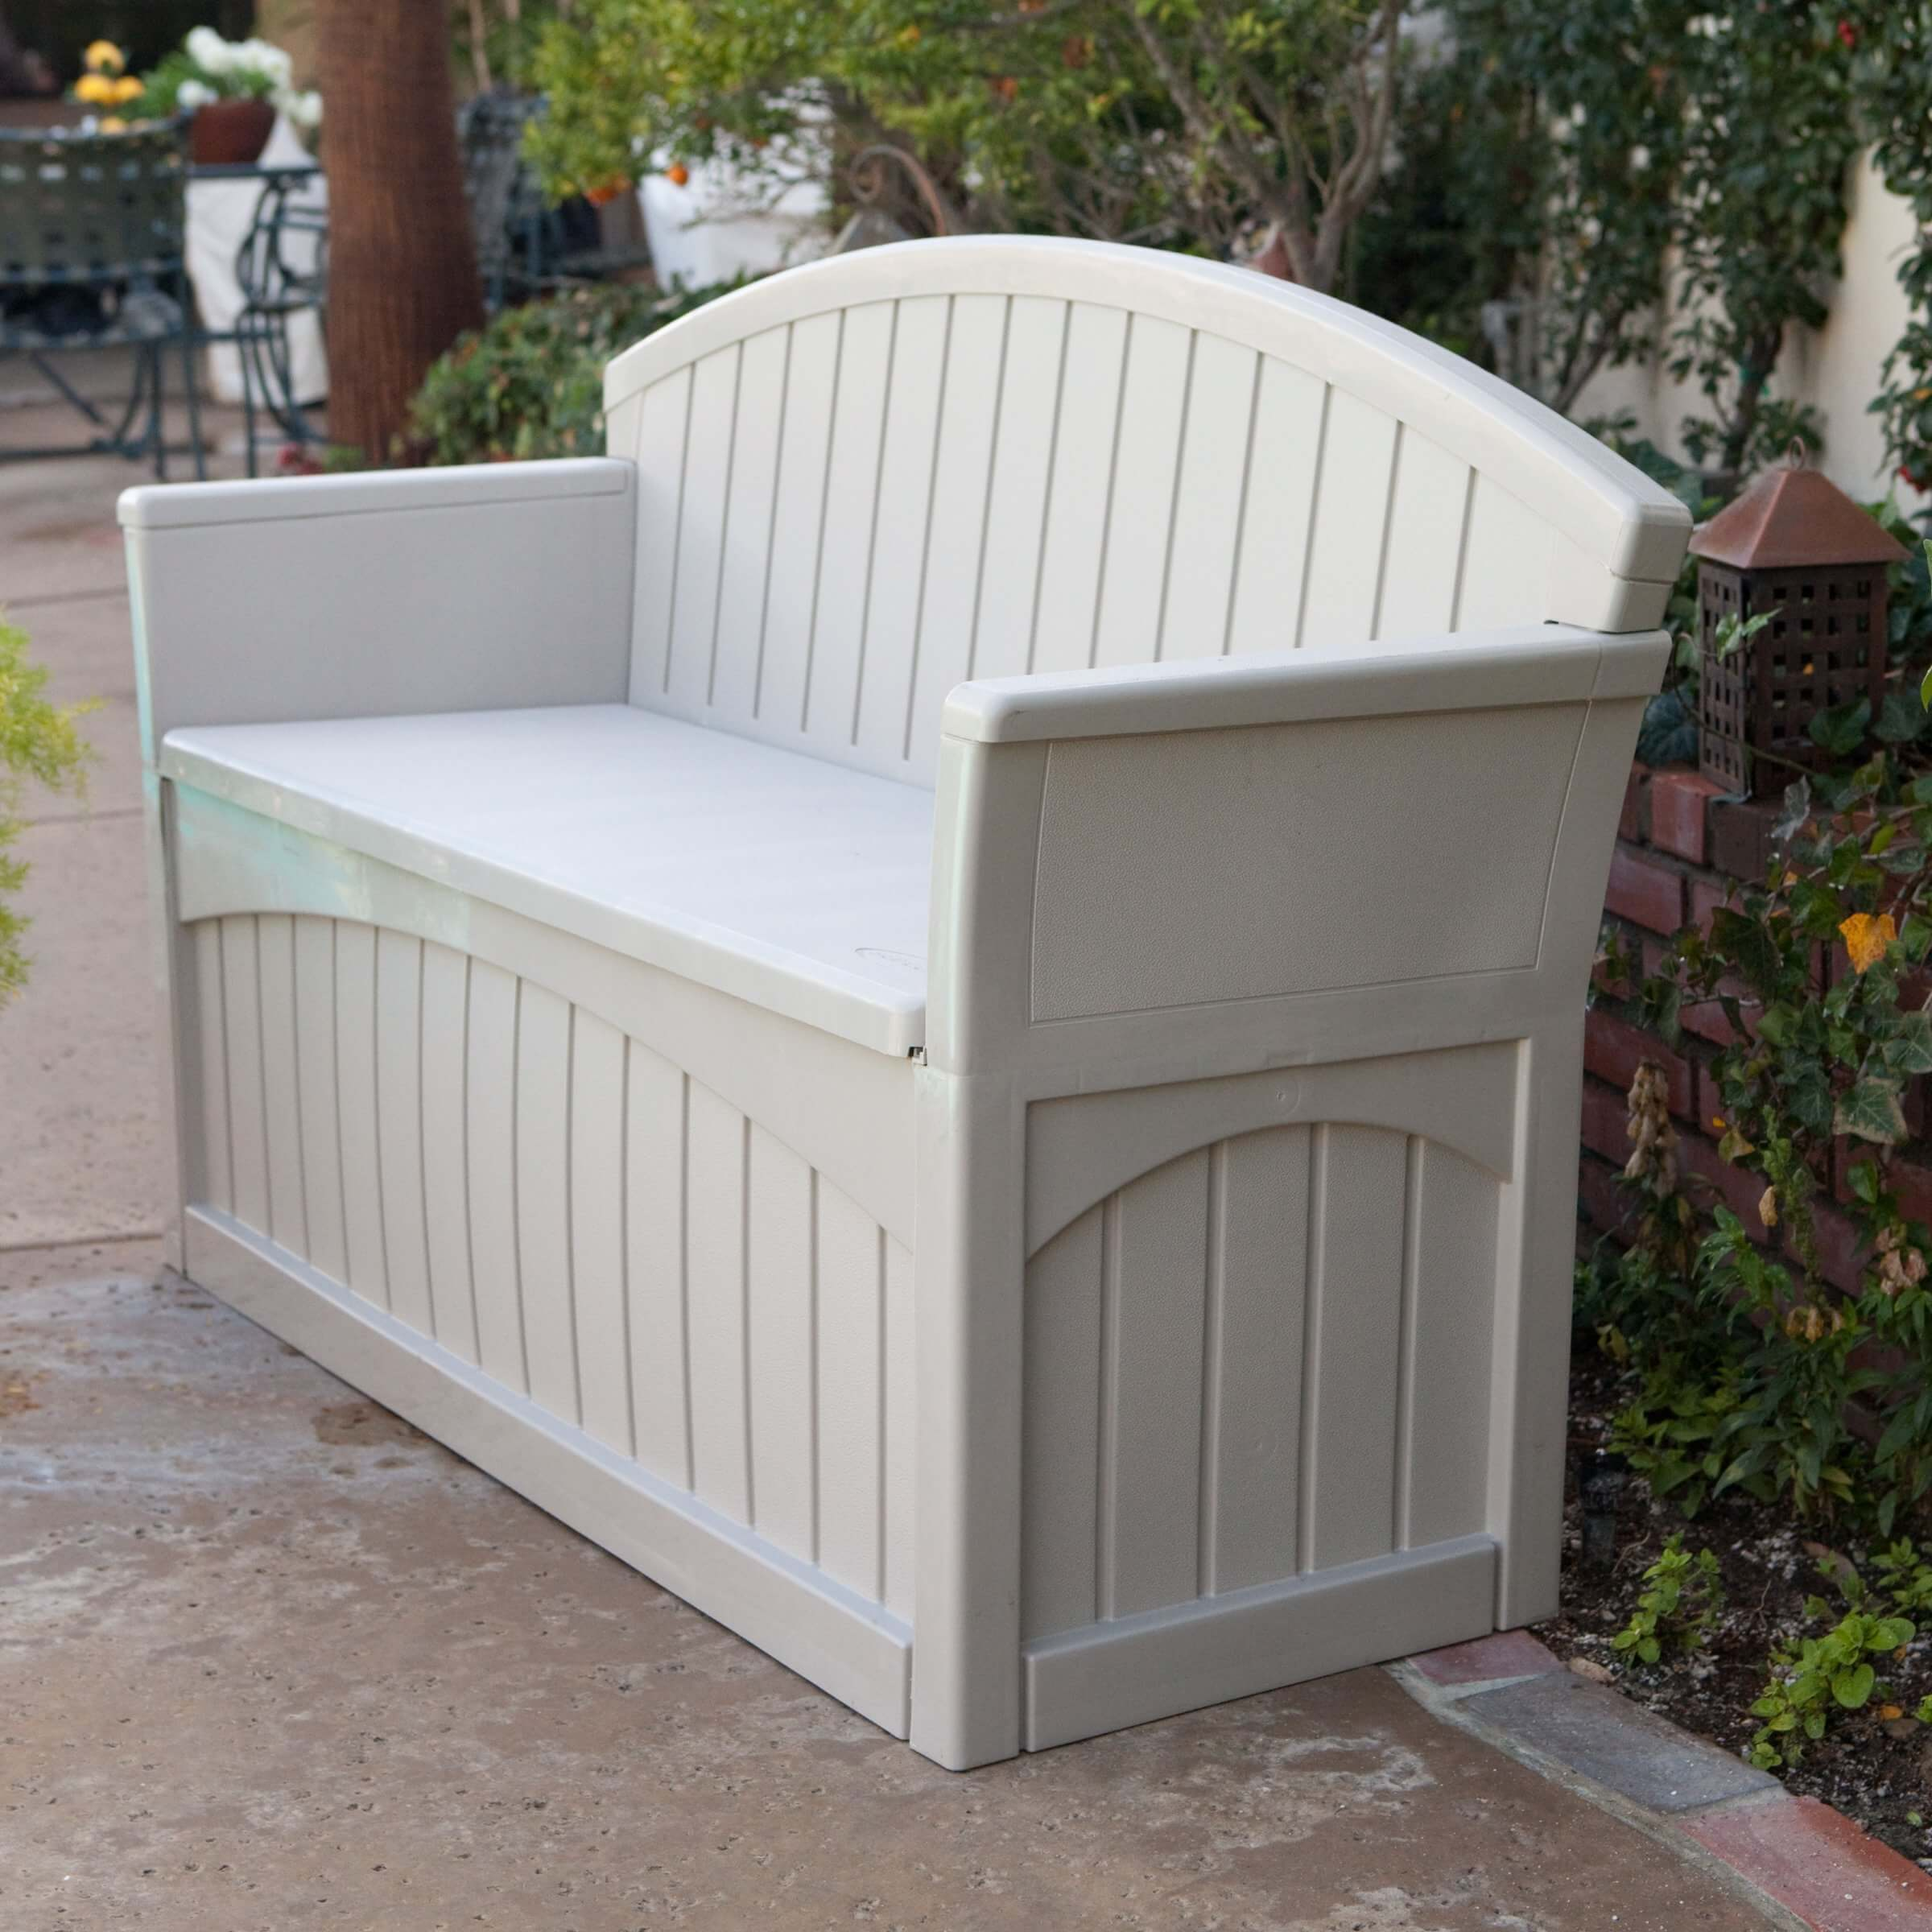 Store seat cushions  towels  outdoor d cor or garden accessories in the  under seat storage. Top 10 Types of Outdoor Deck Storage Boxes